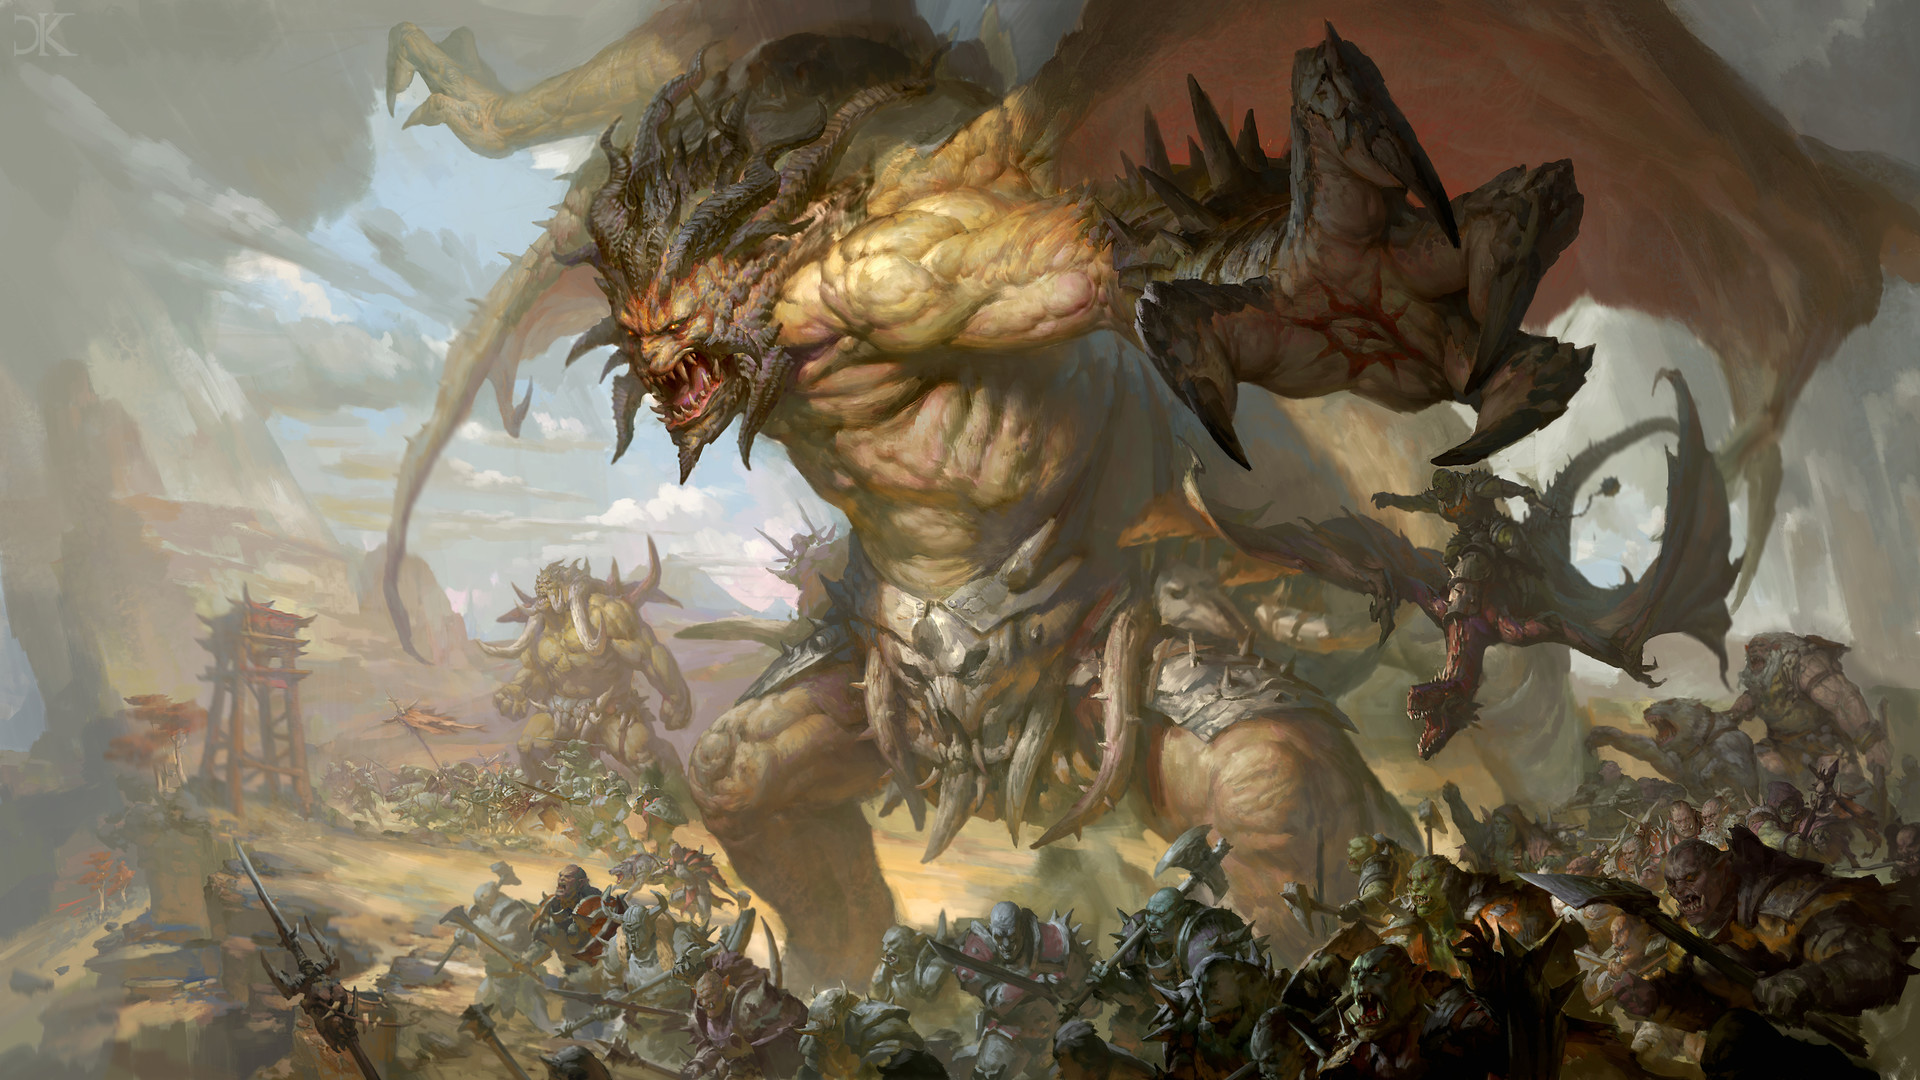 Battle Creature Horns Orc Warrior Wings 1920x1080